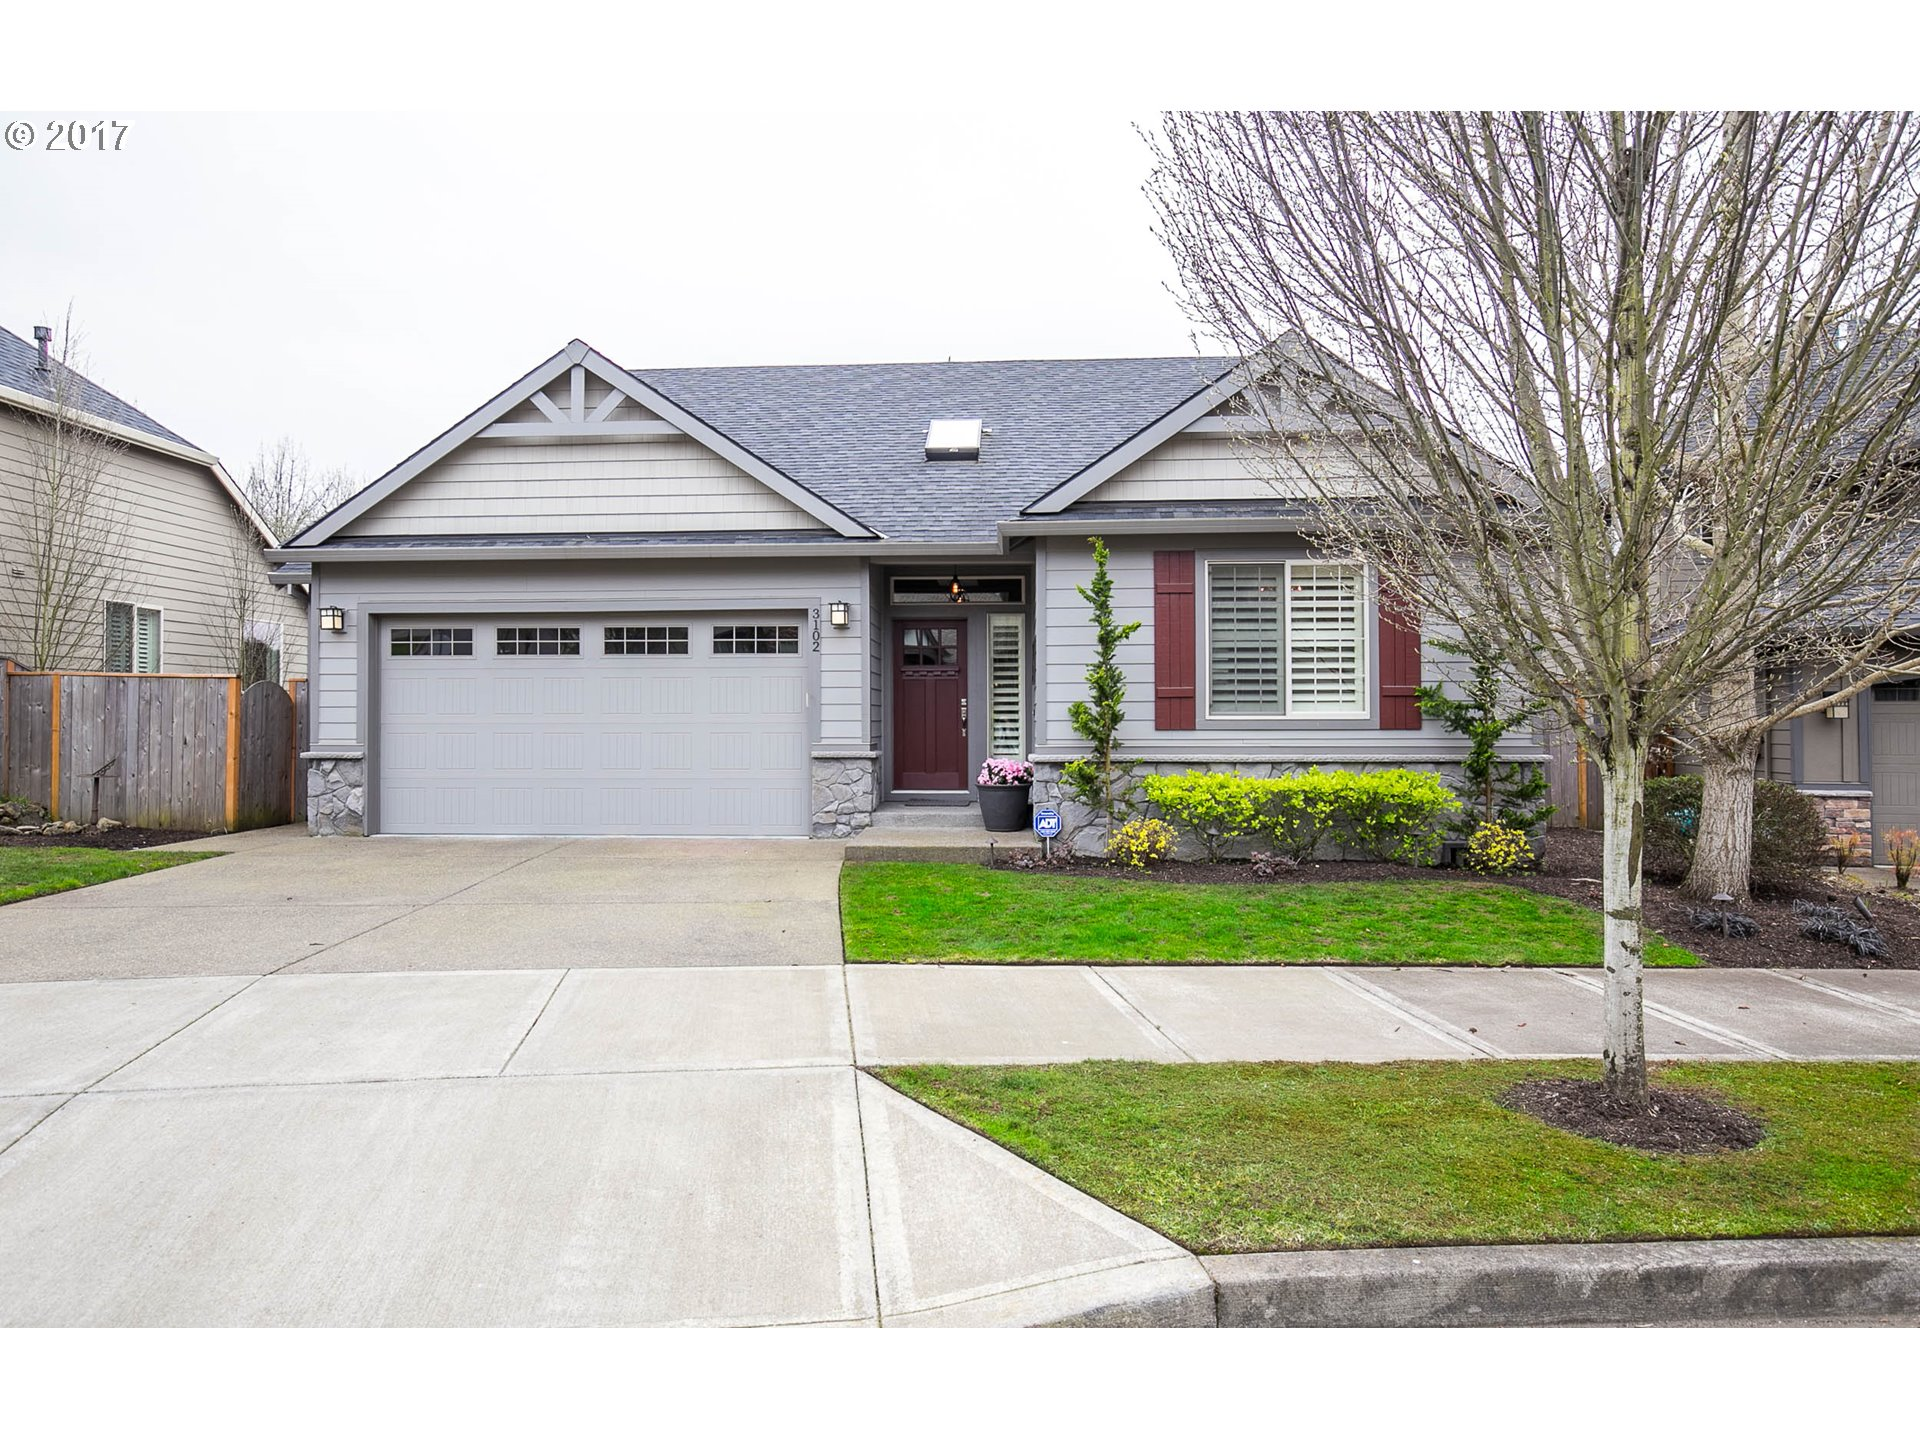 2905 sq. ft 4 bedrooms 3 bathrooms  House For Sale, West Linn, OR